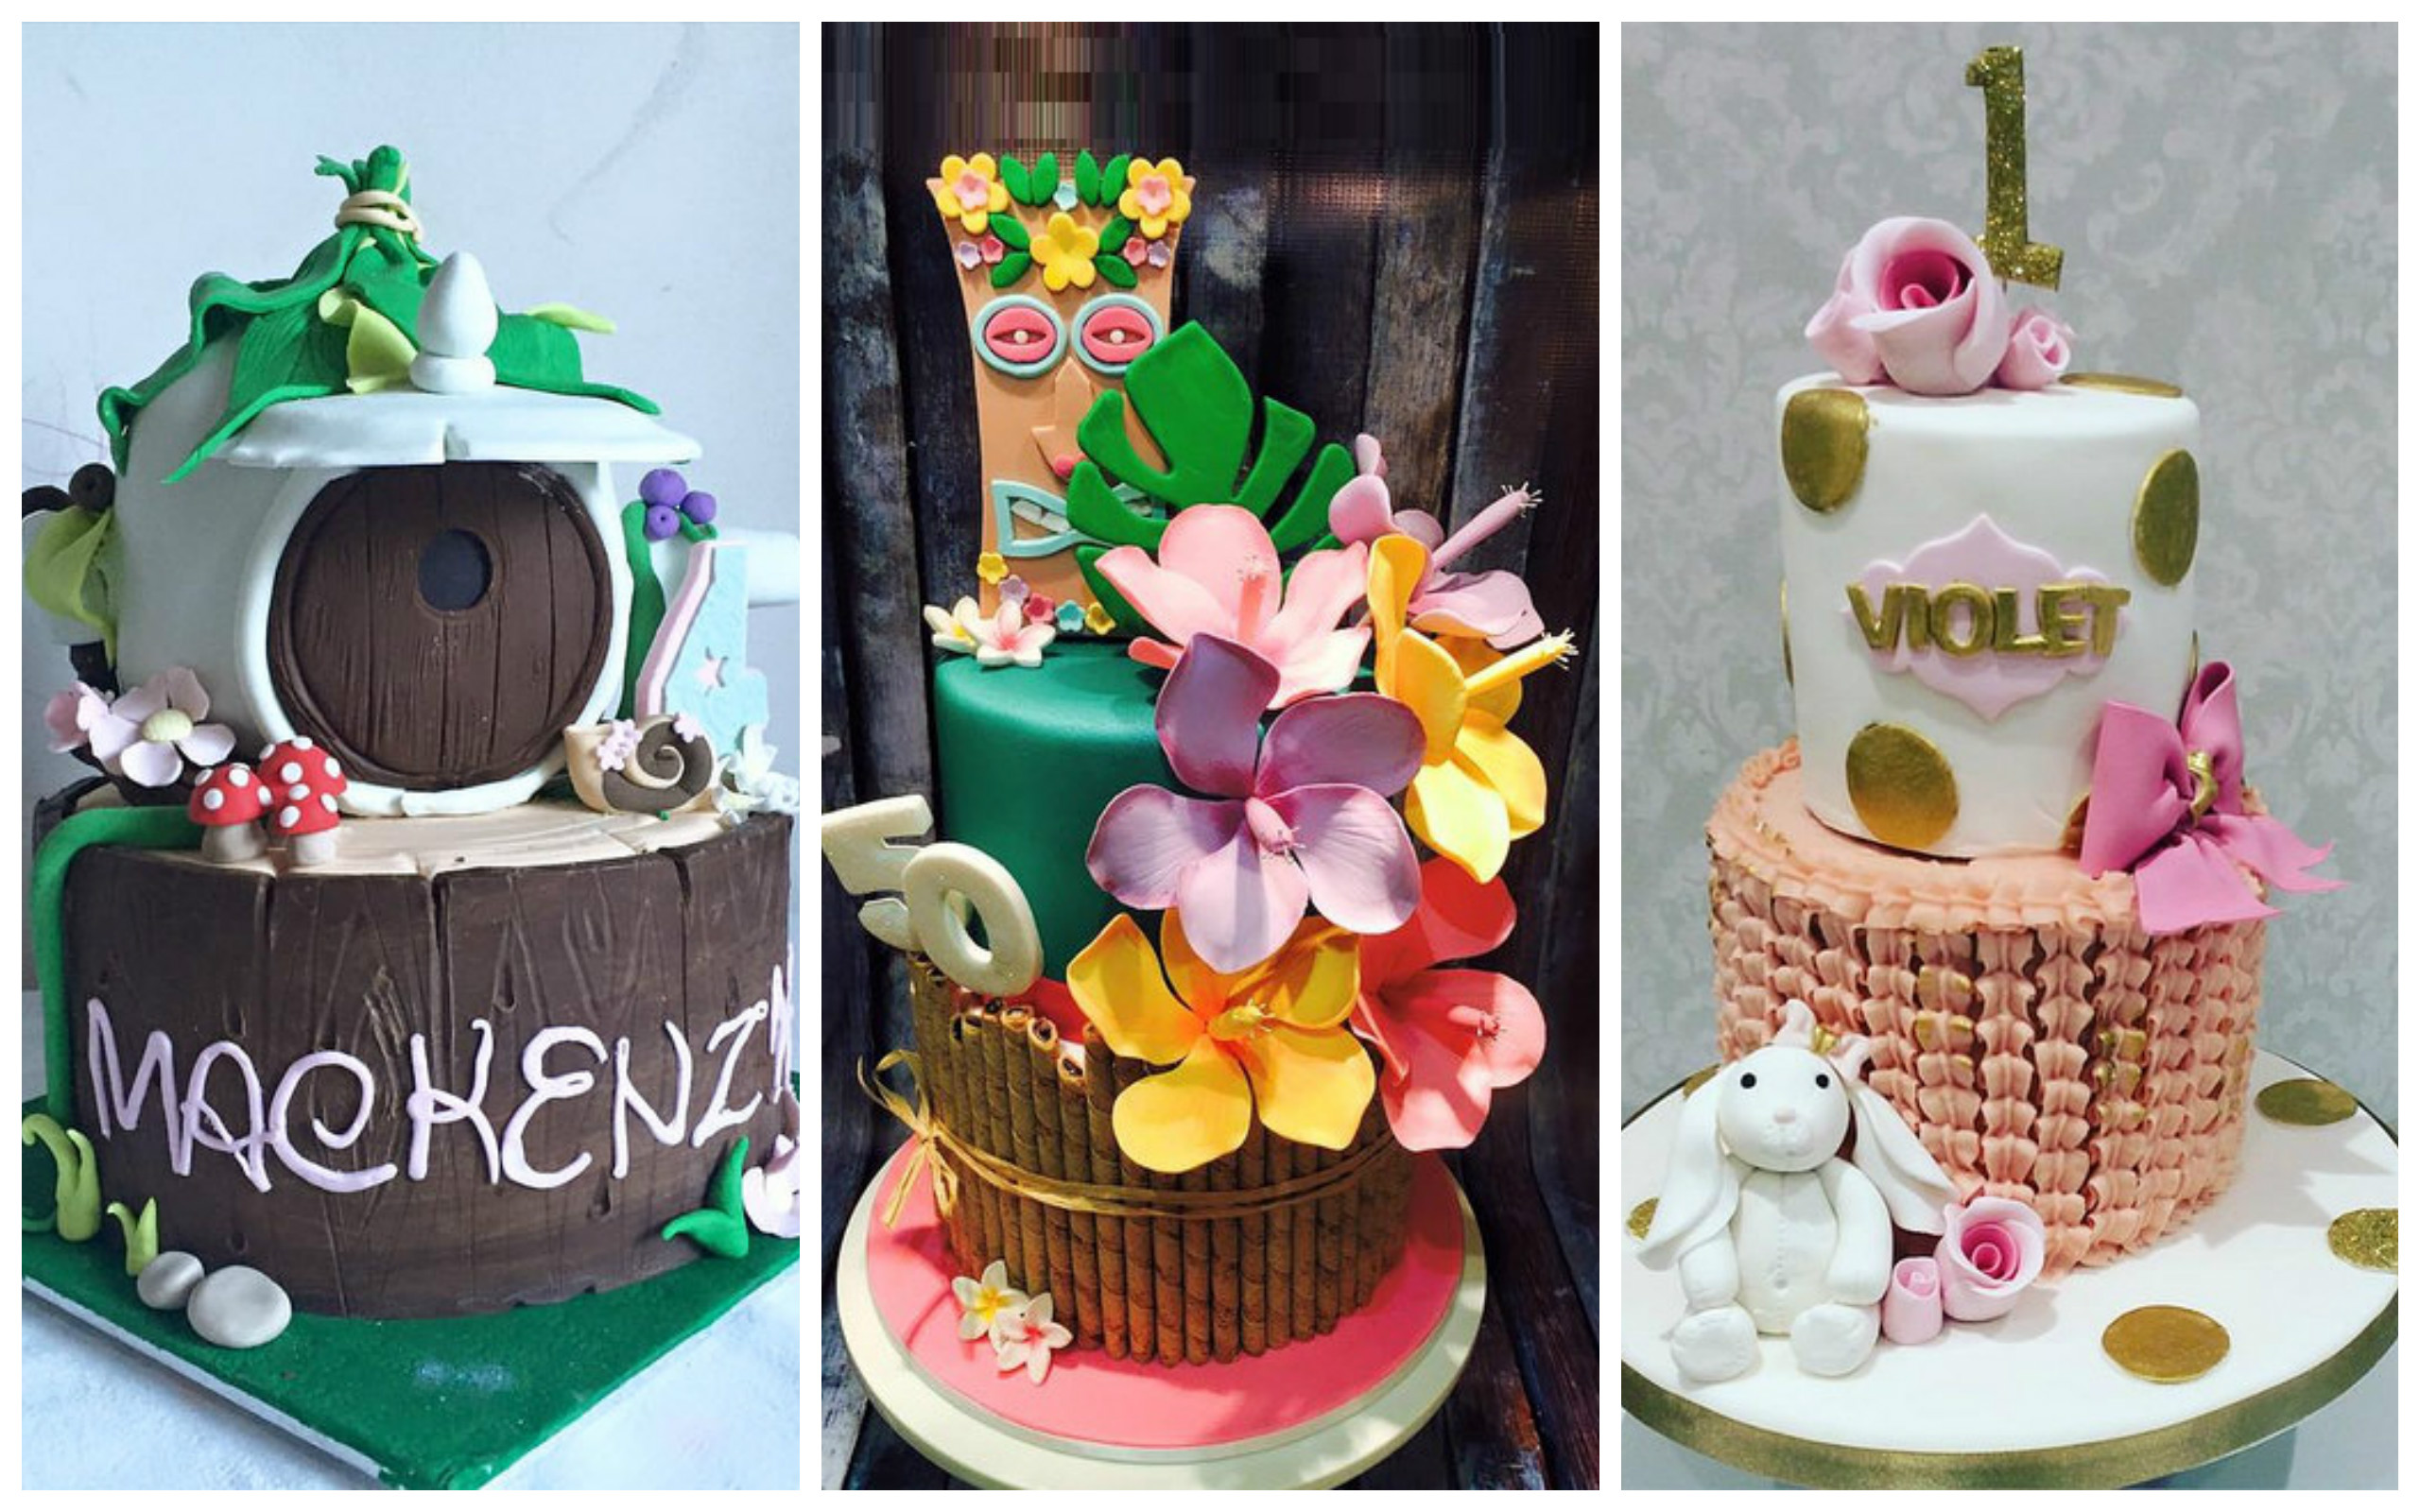 competition worlds highly artistic cake decorator - Cake Decorator